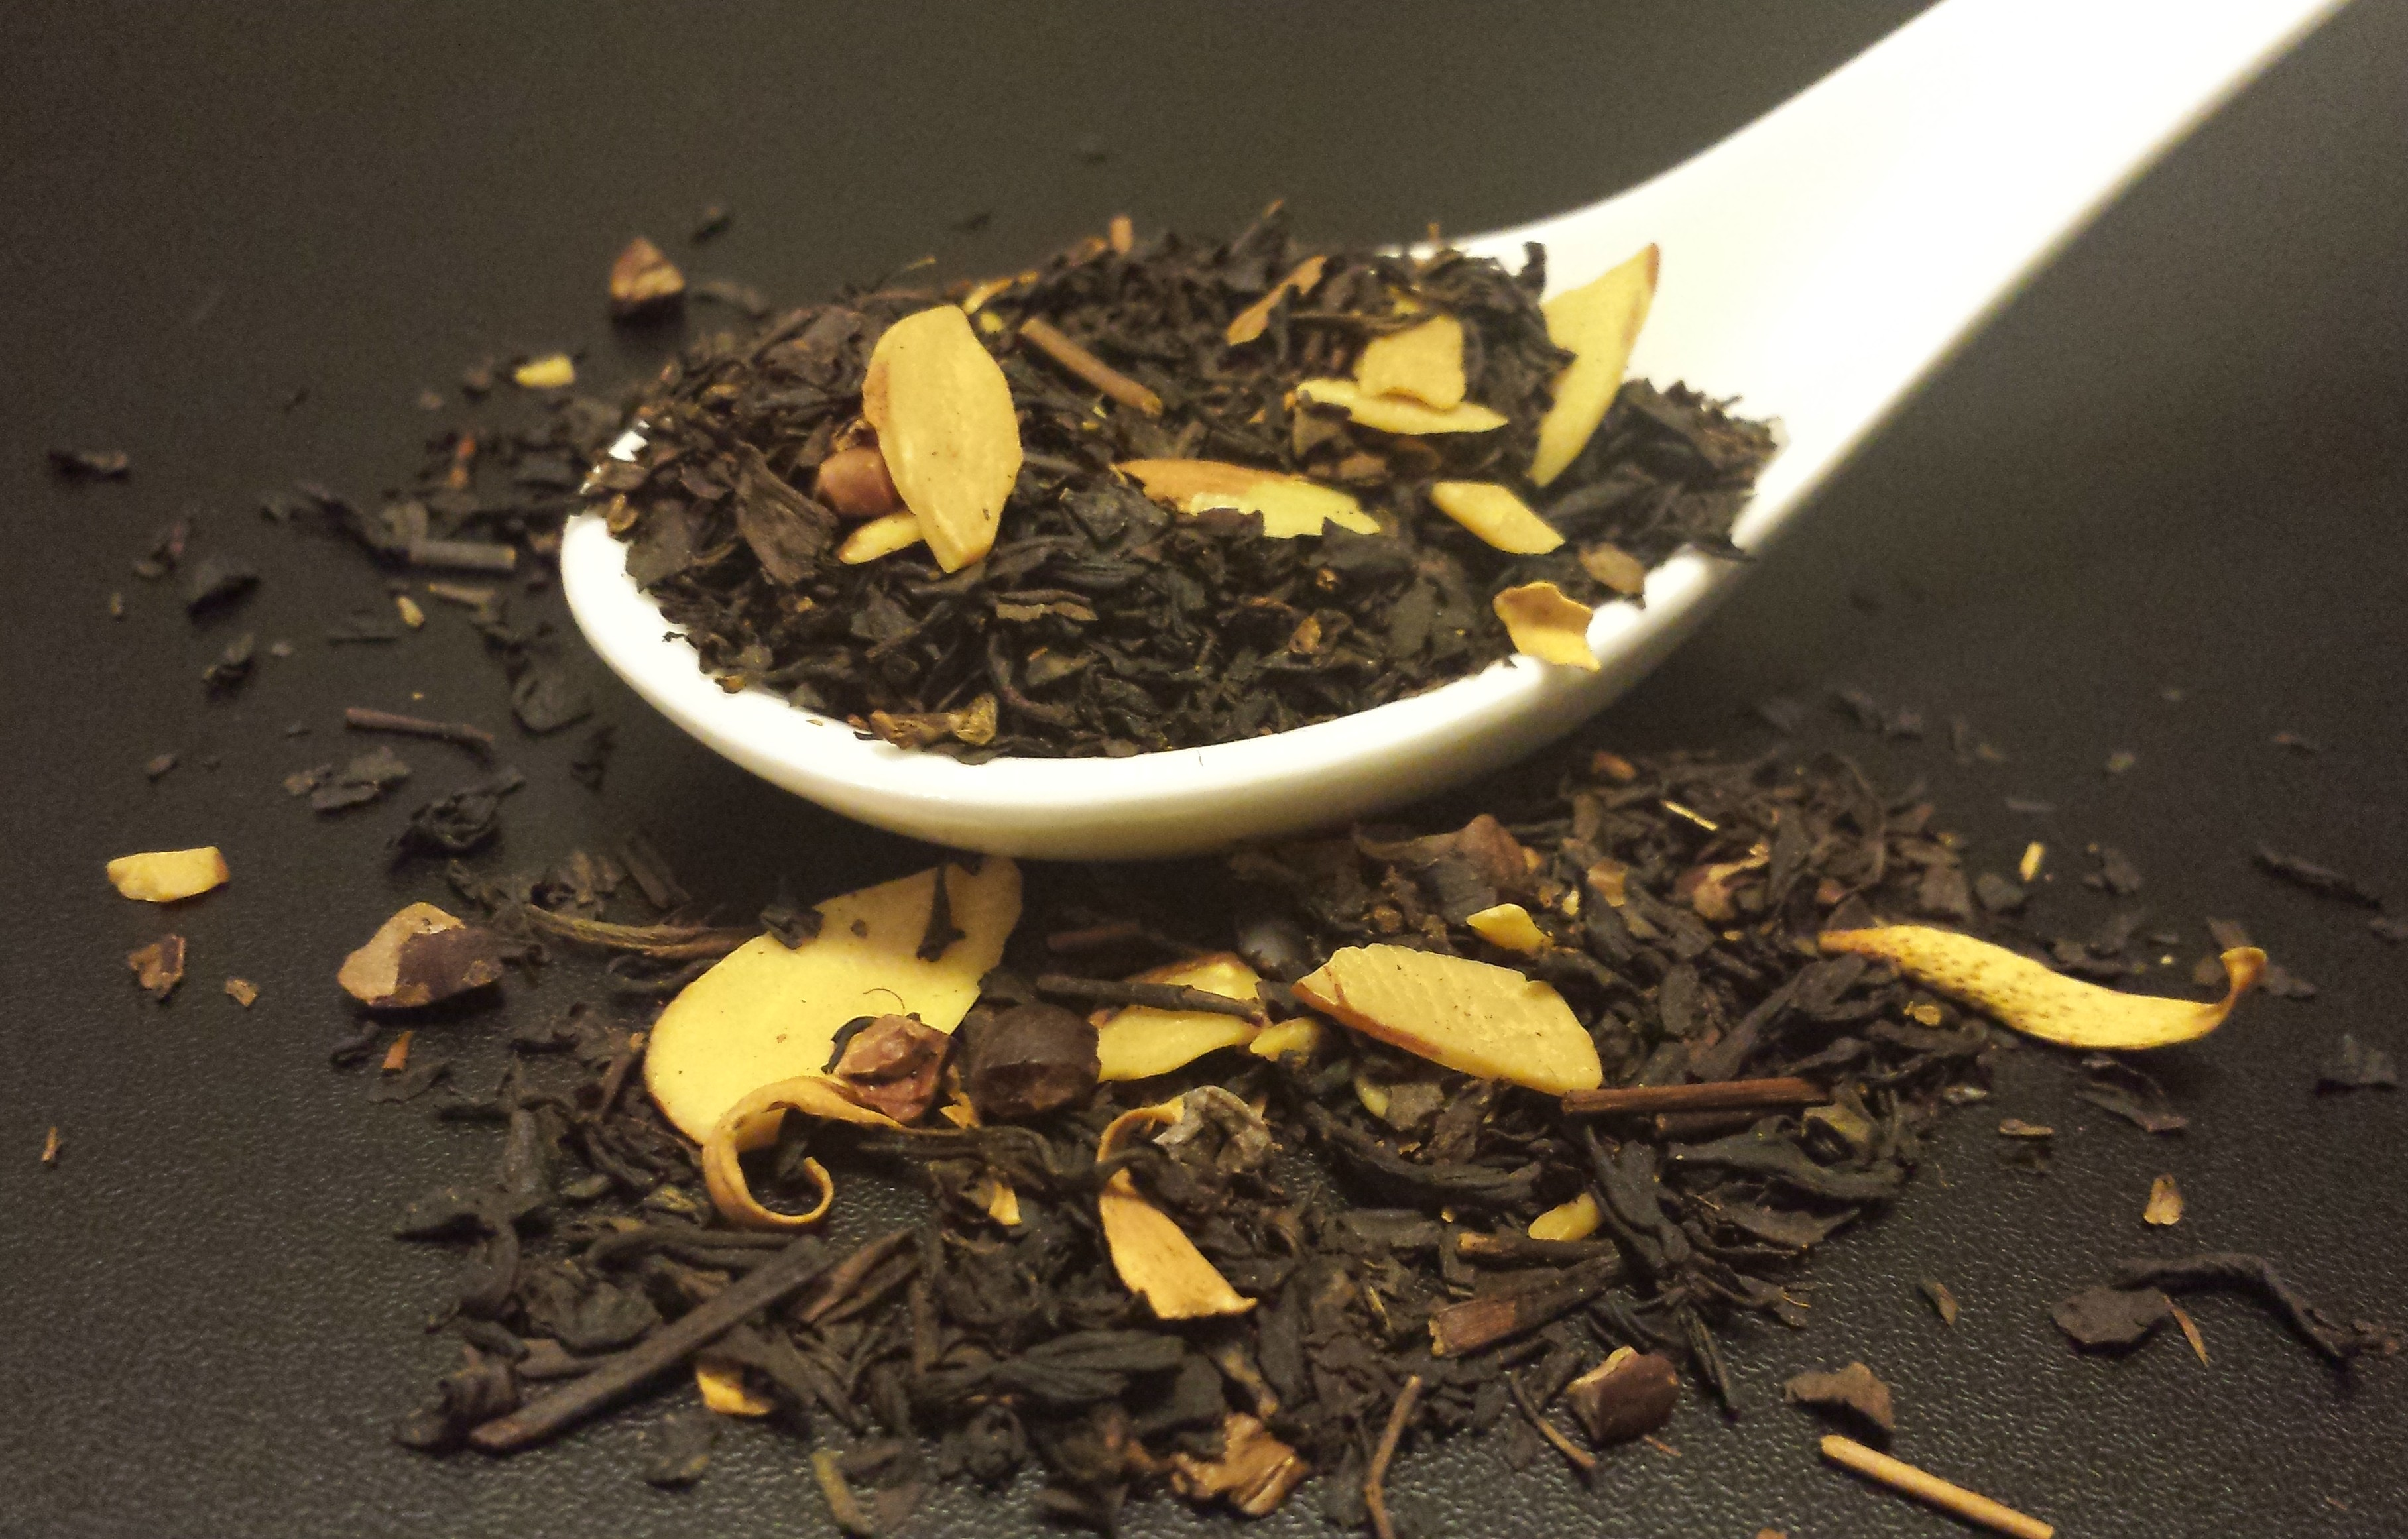 St. Nick's tea, seasonal, holiday, black tea, almond, cacao nib, vanilla bean, orange blossom